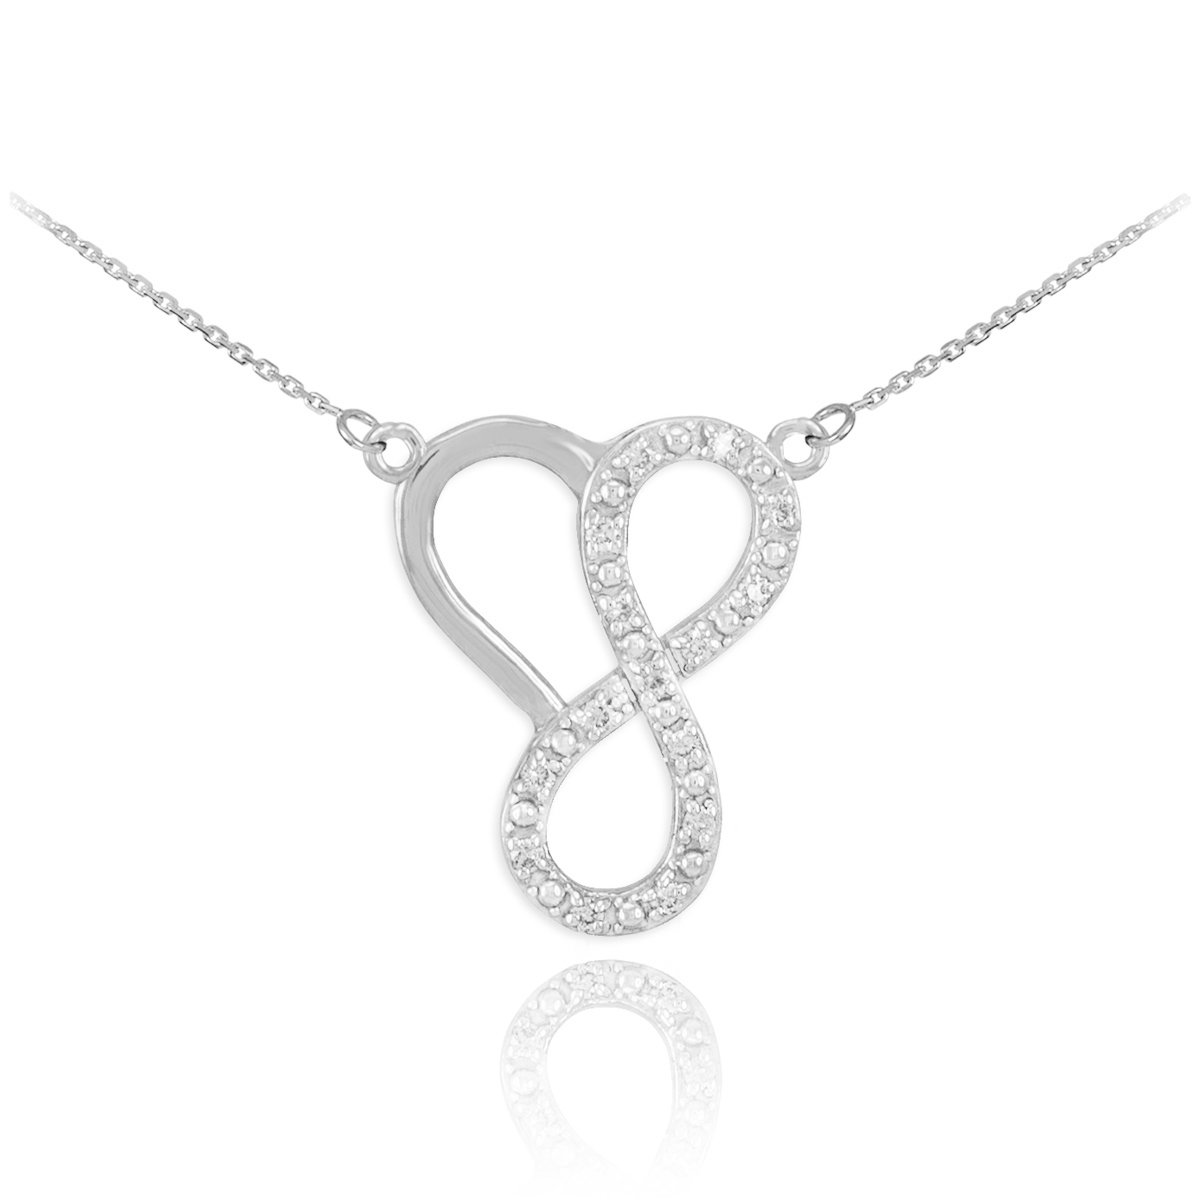 Double-Mounted 925 Sterling Silver CZ Heart Infinity Necklace